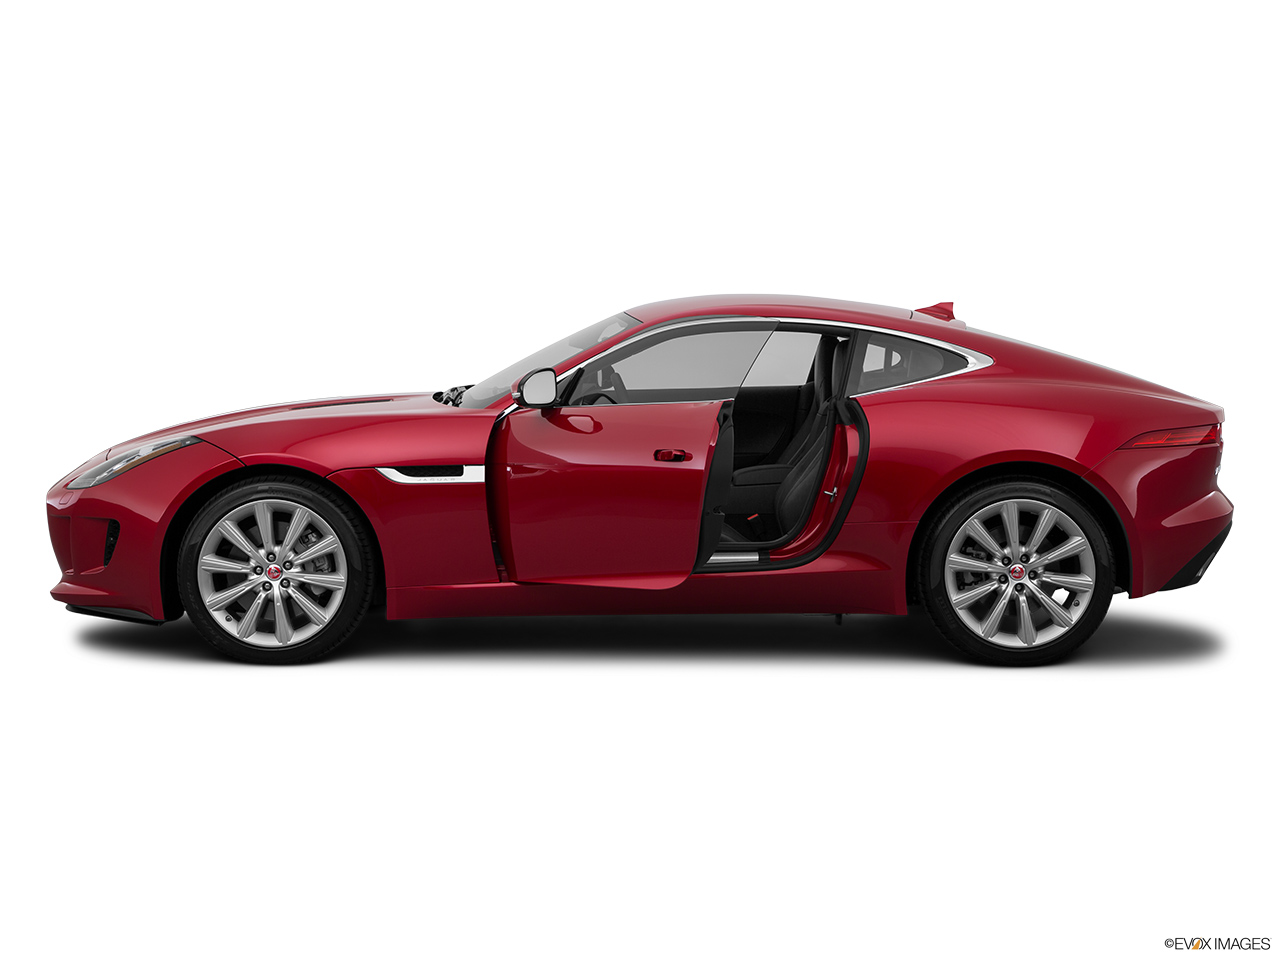 2015 Jaguar F-Type Coupe Base Driver's side profile with drivers side door open.